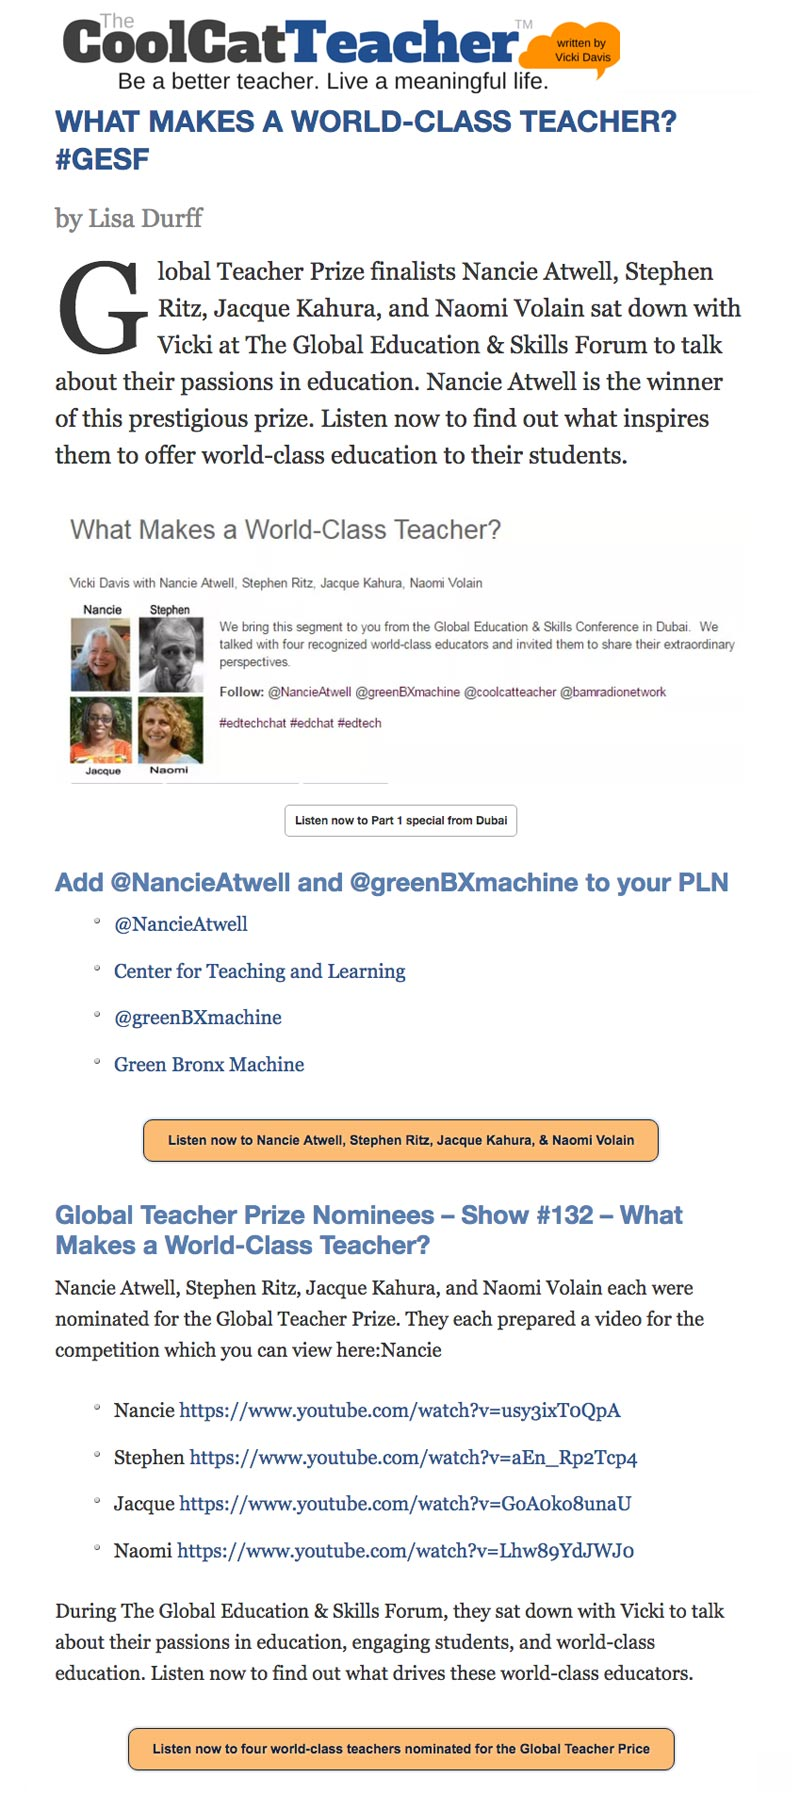 Cool Cat Teacher - What Makes A World-Class Teacher?